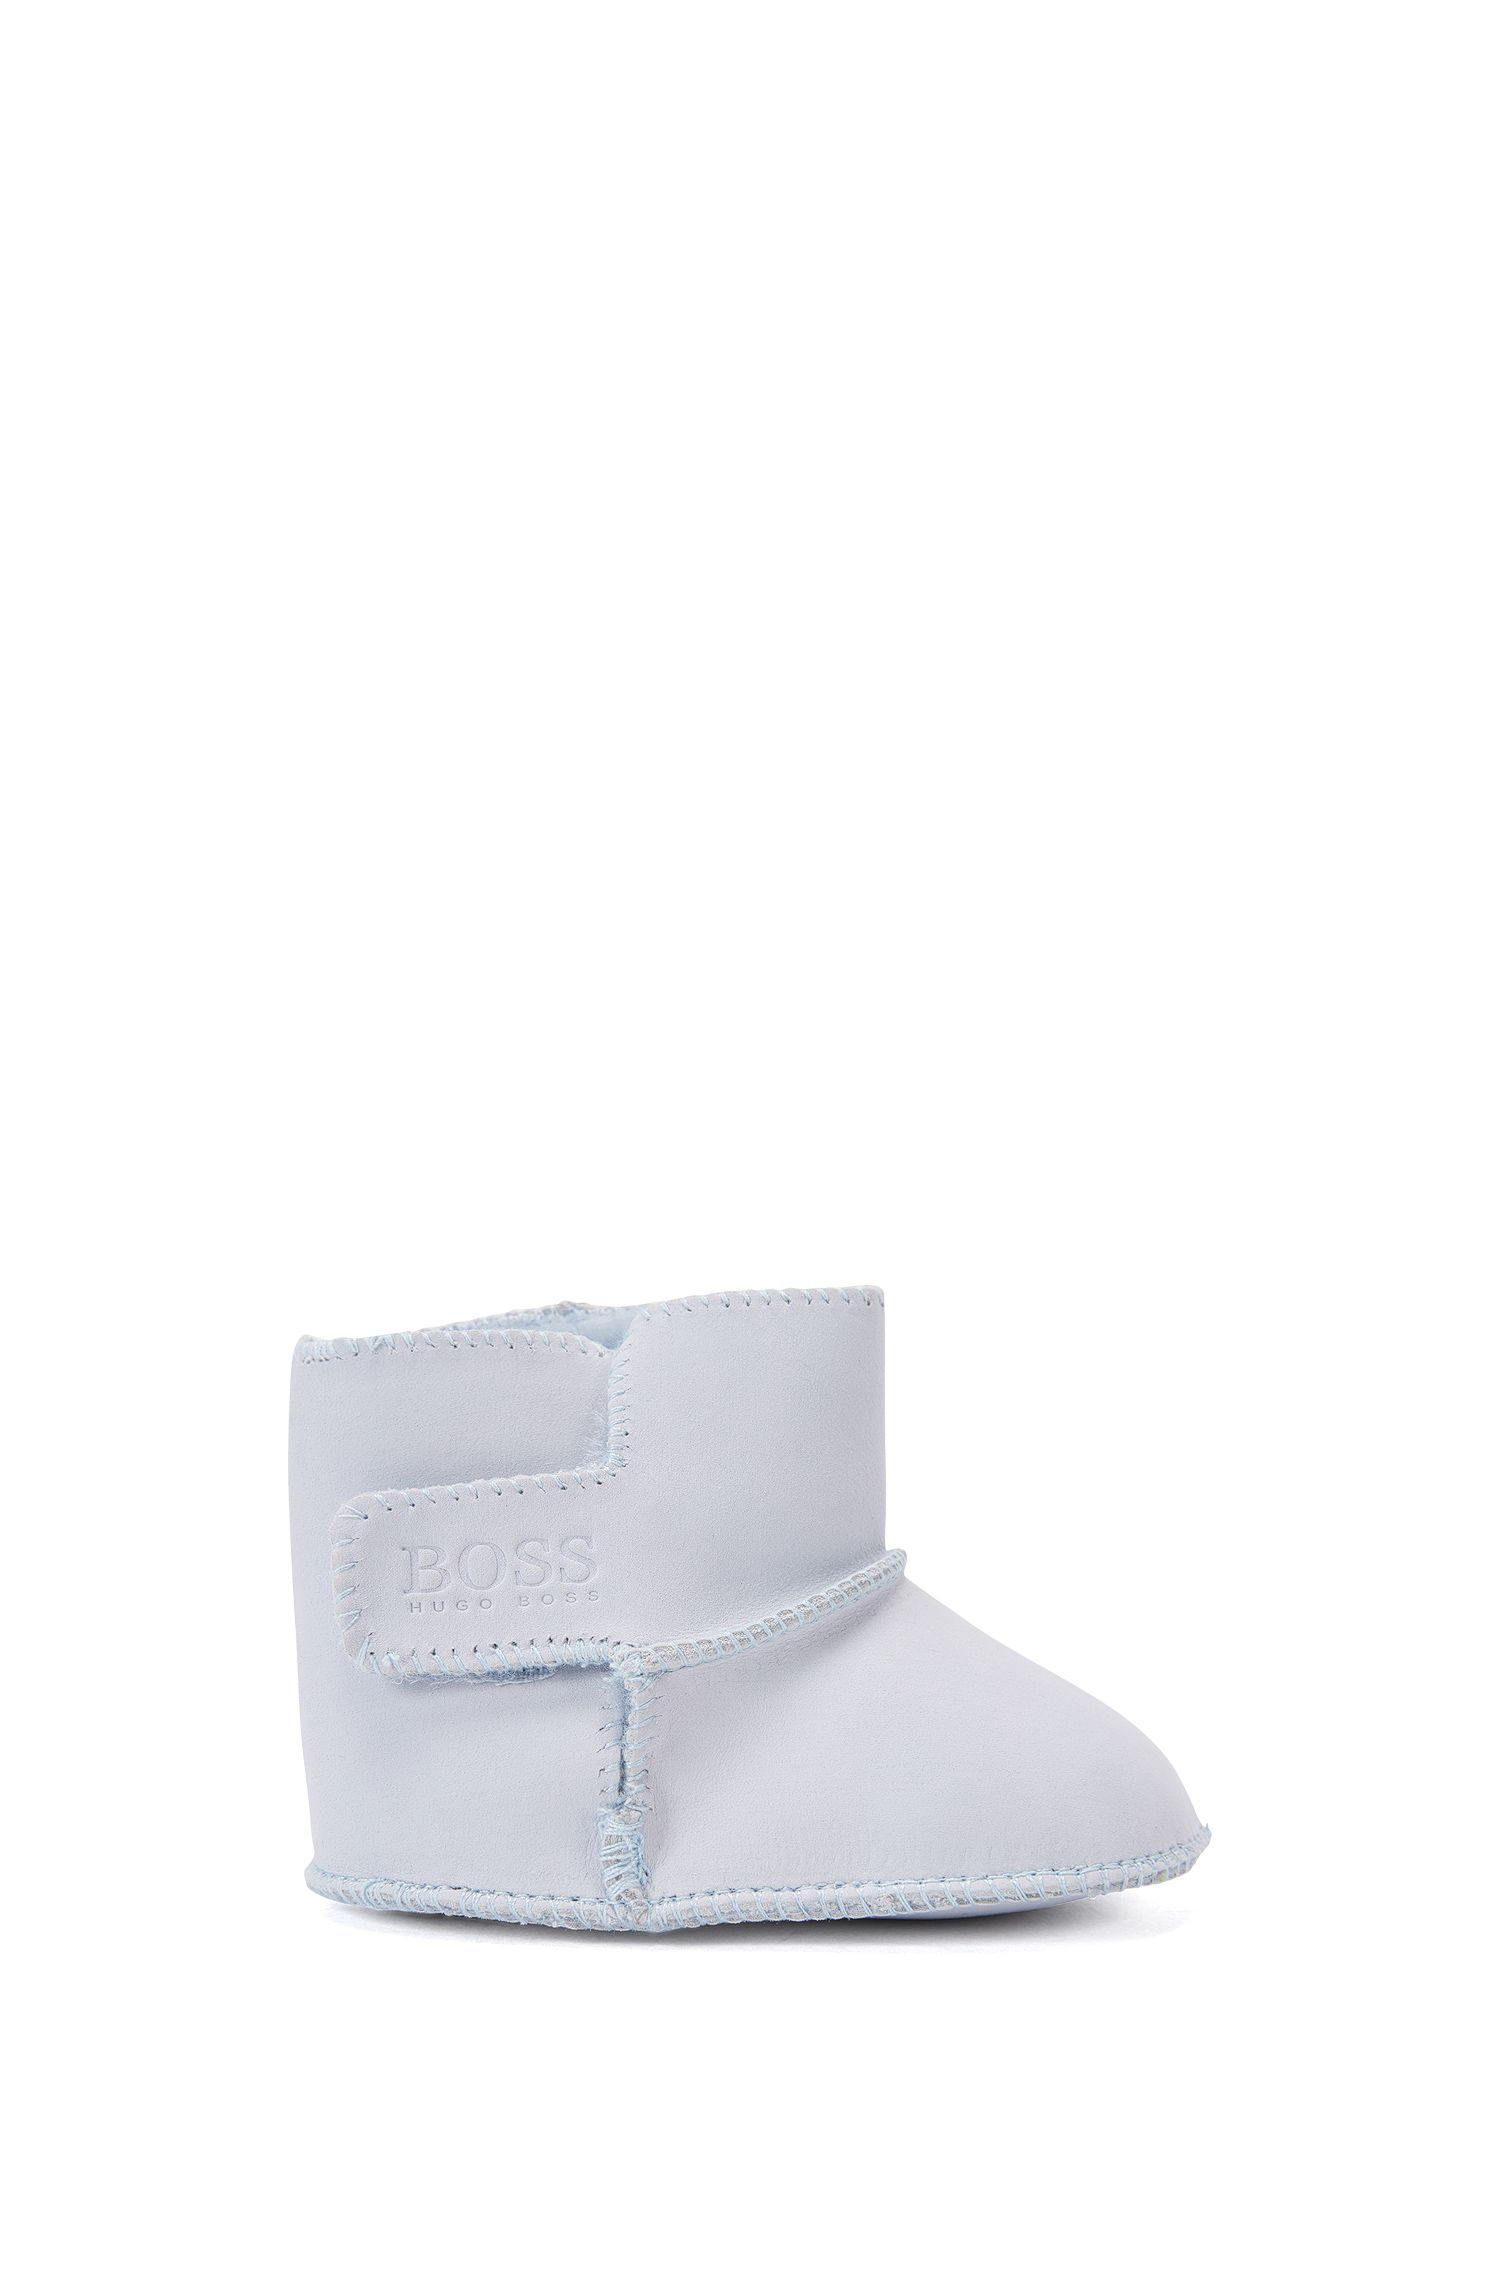 'J99048' | Newborn Cotton Booties